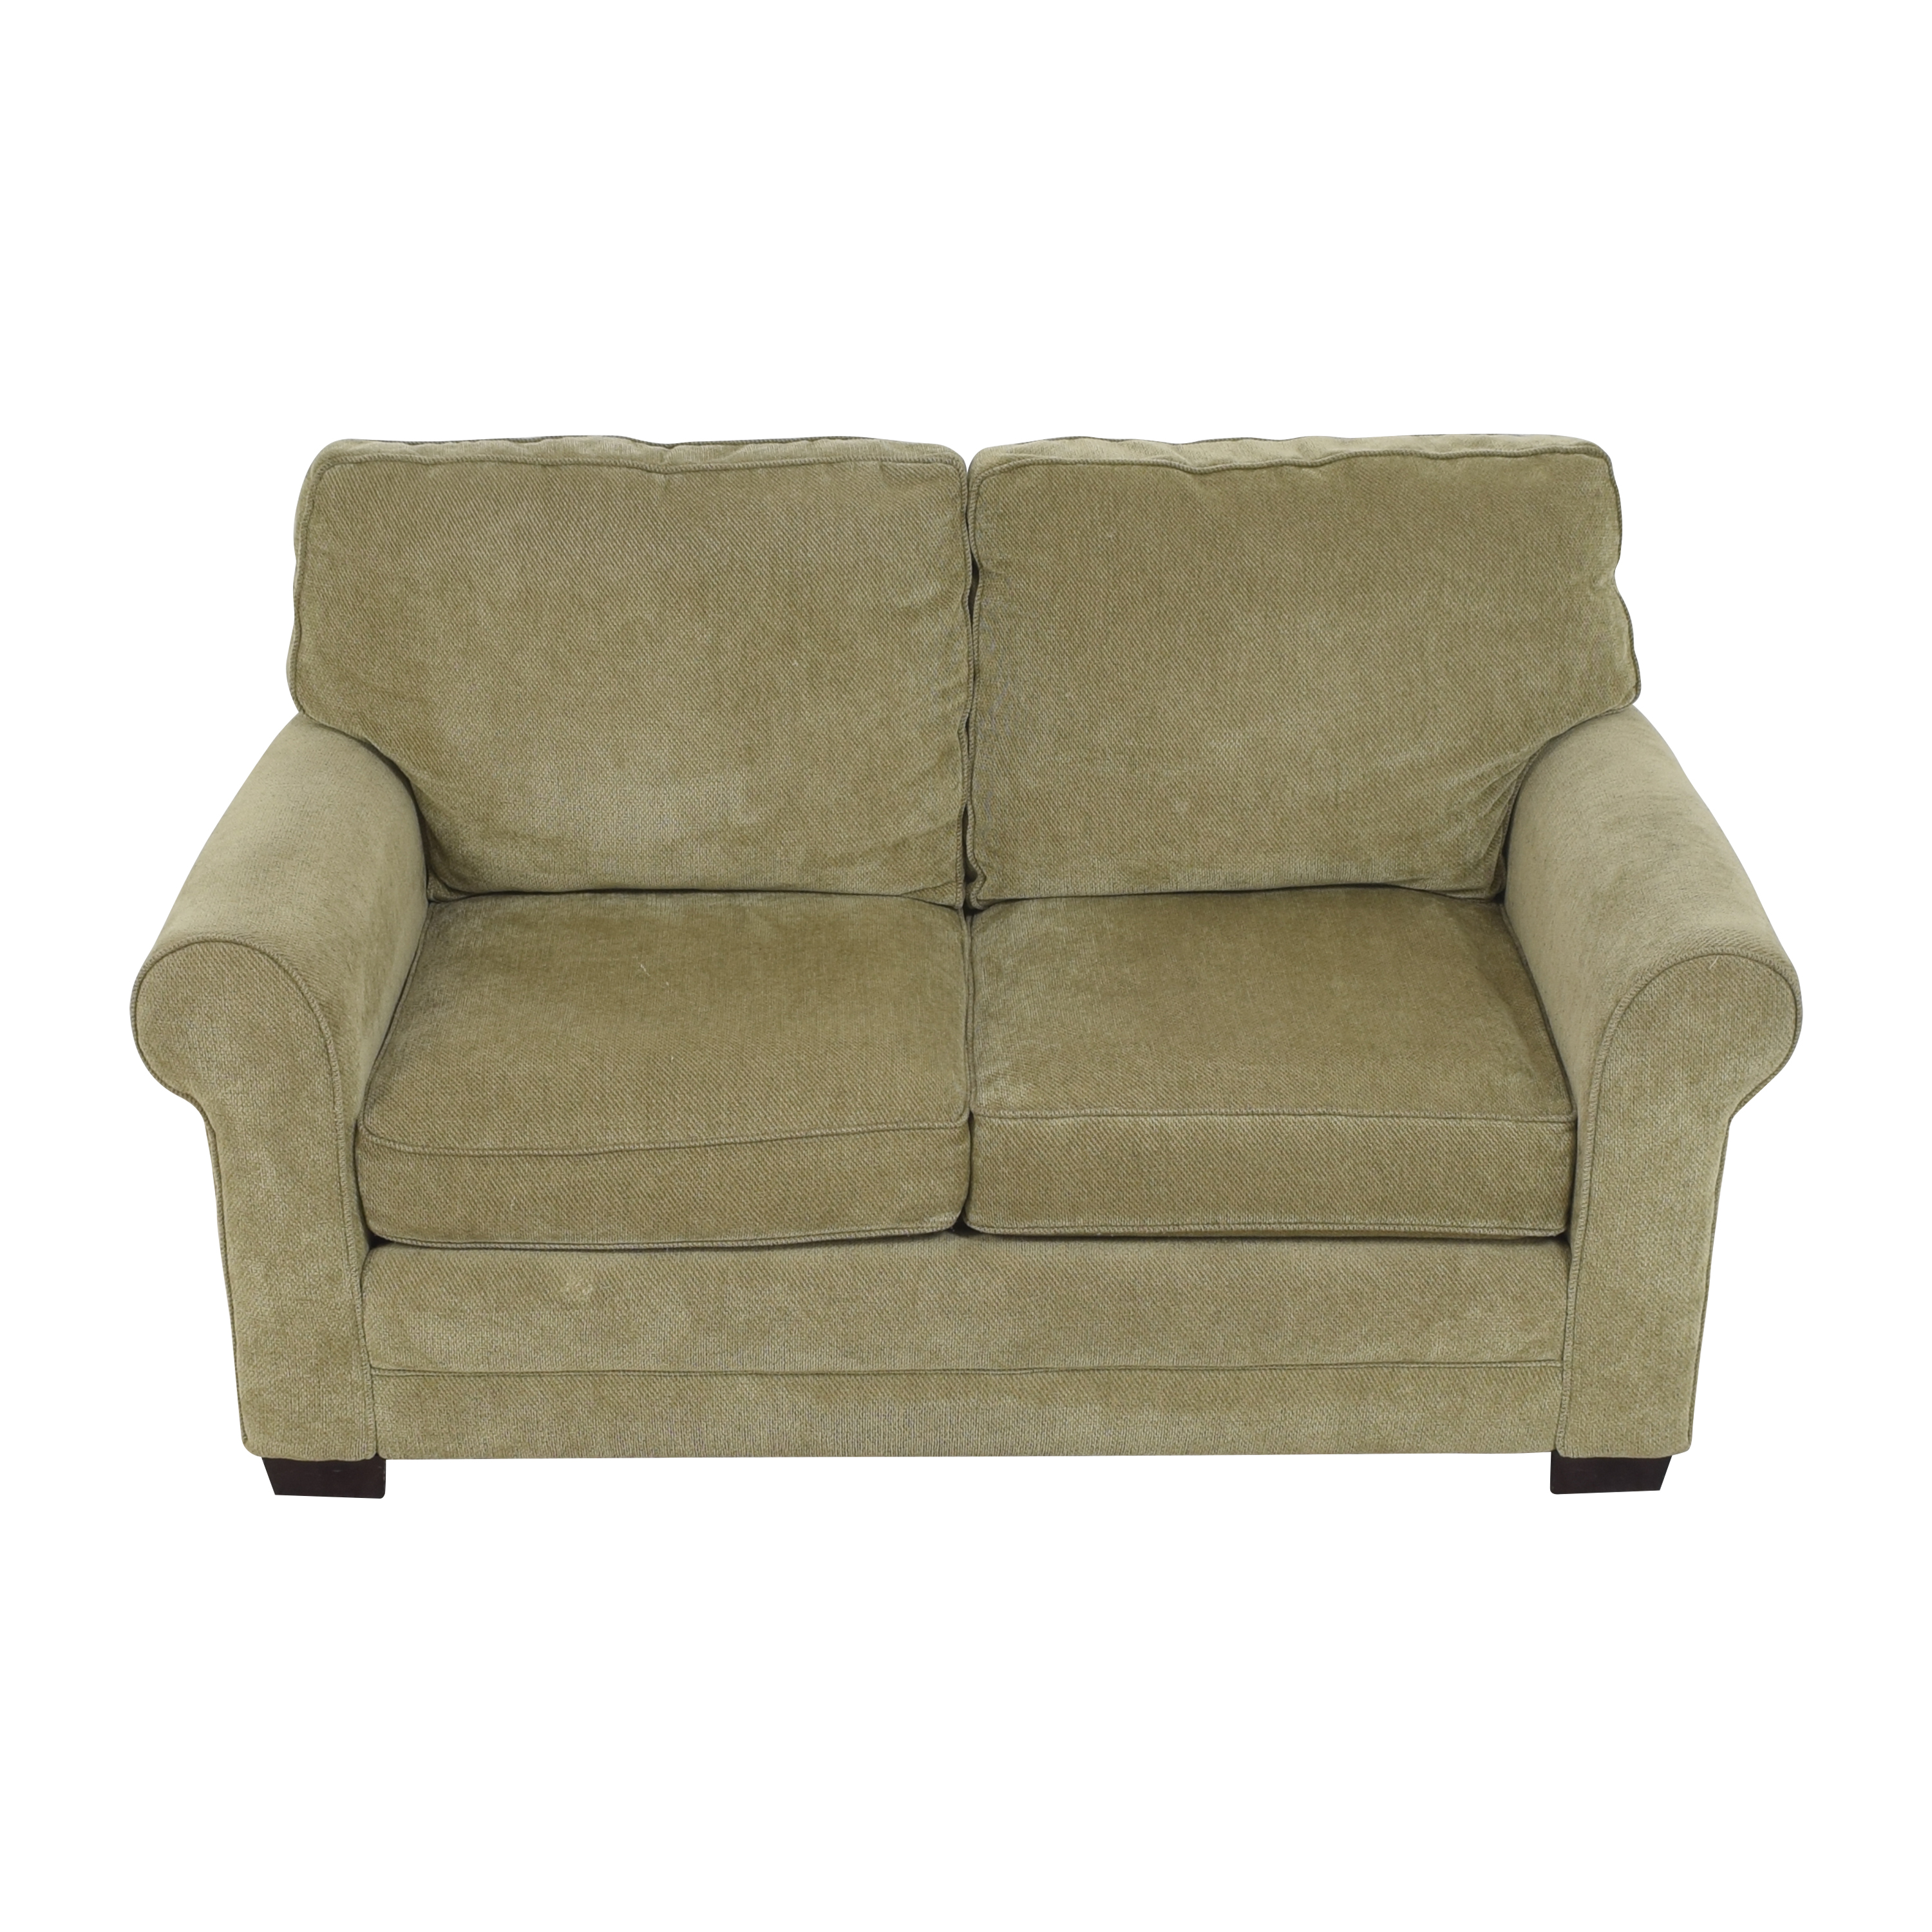 Raymour & Flanigan Raymour & Flanigan Roll Arm Loveseat ct